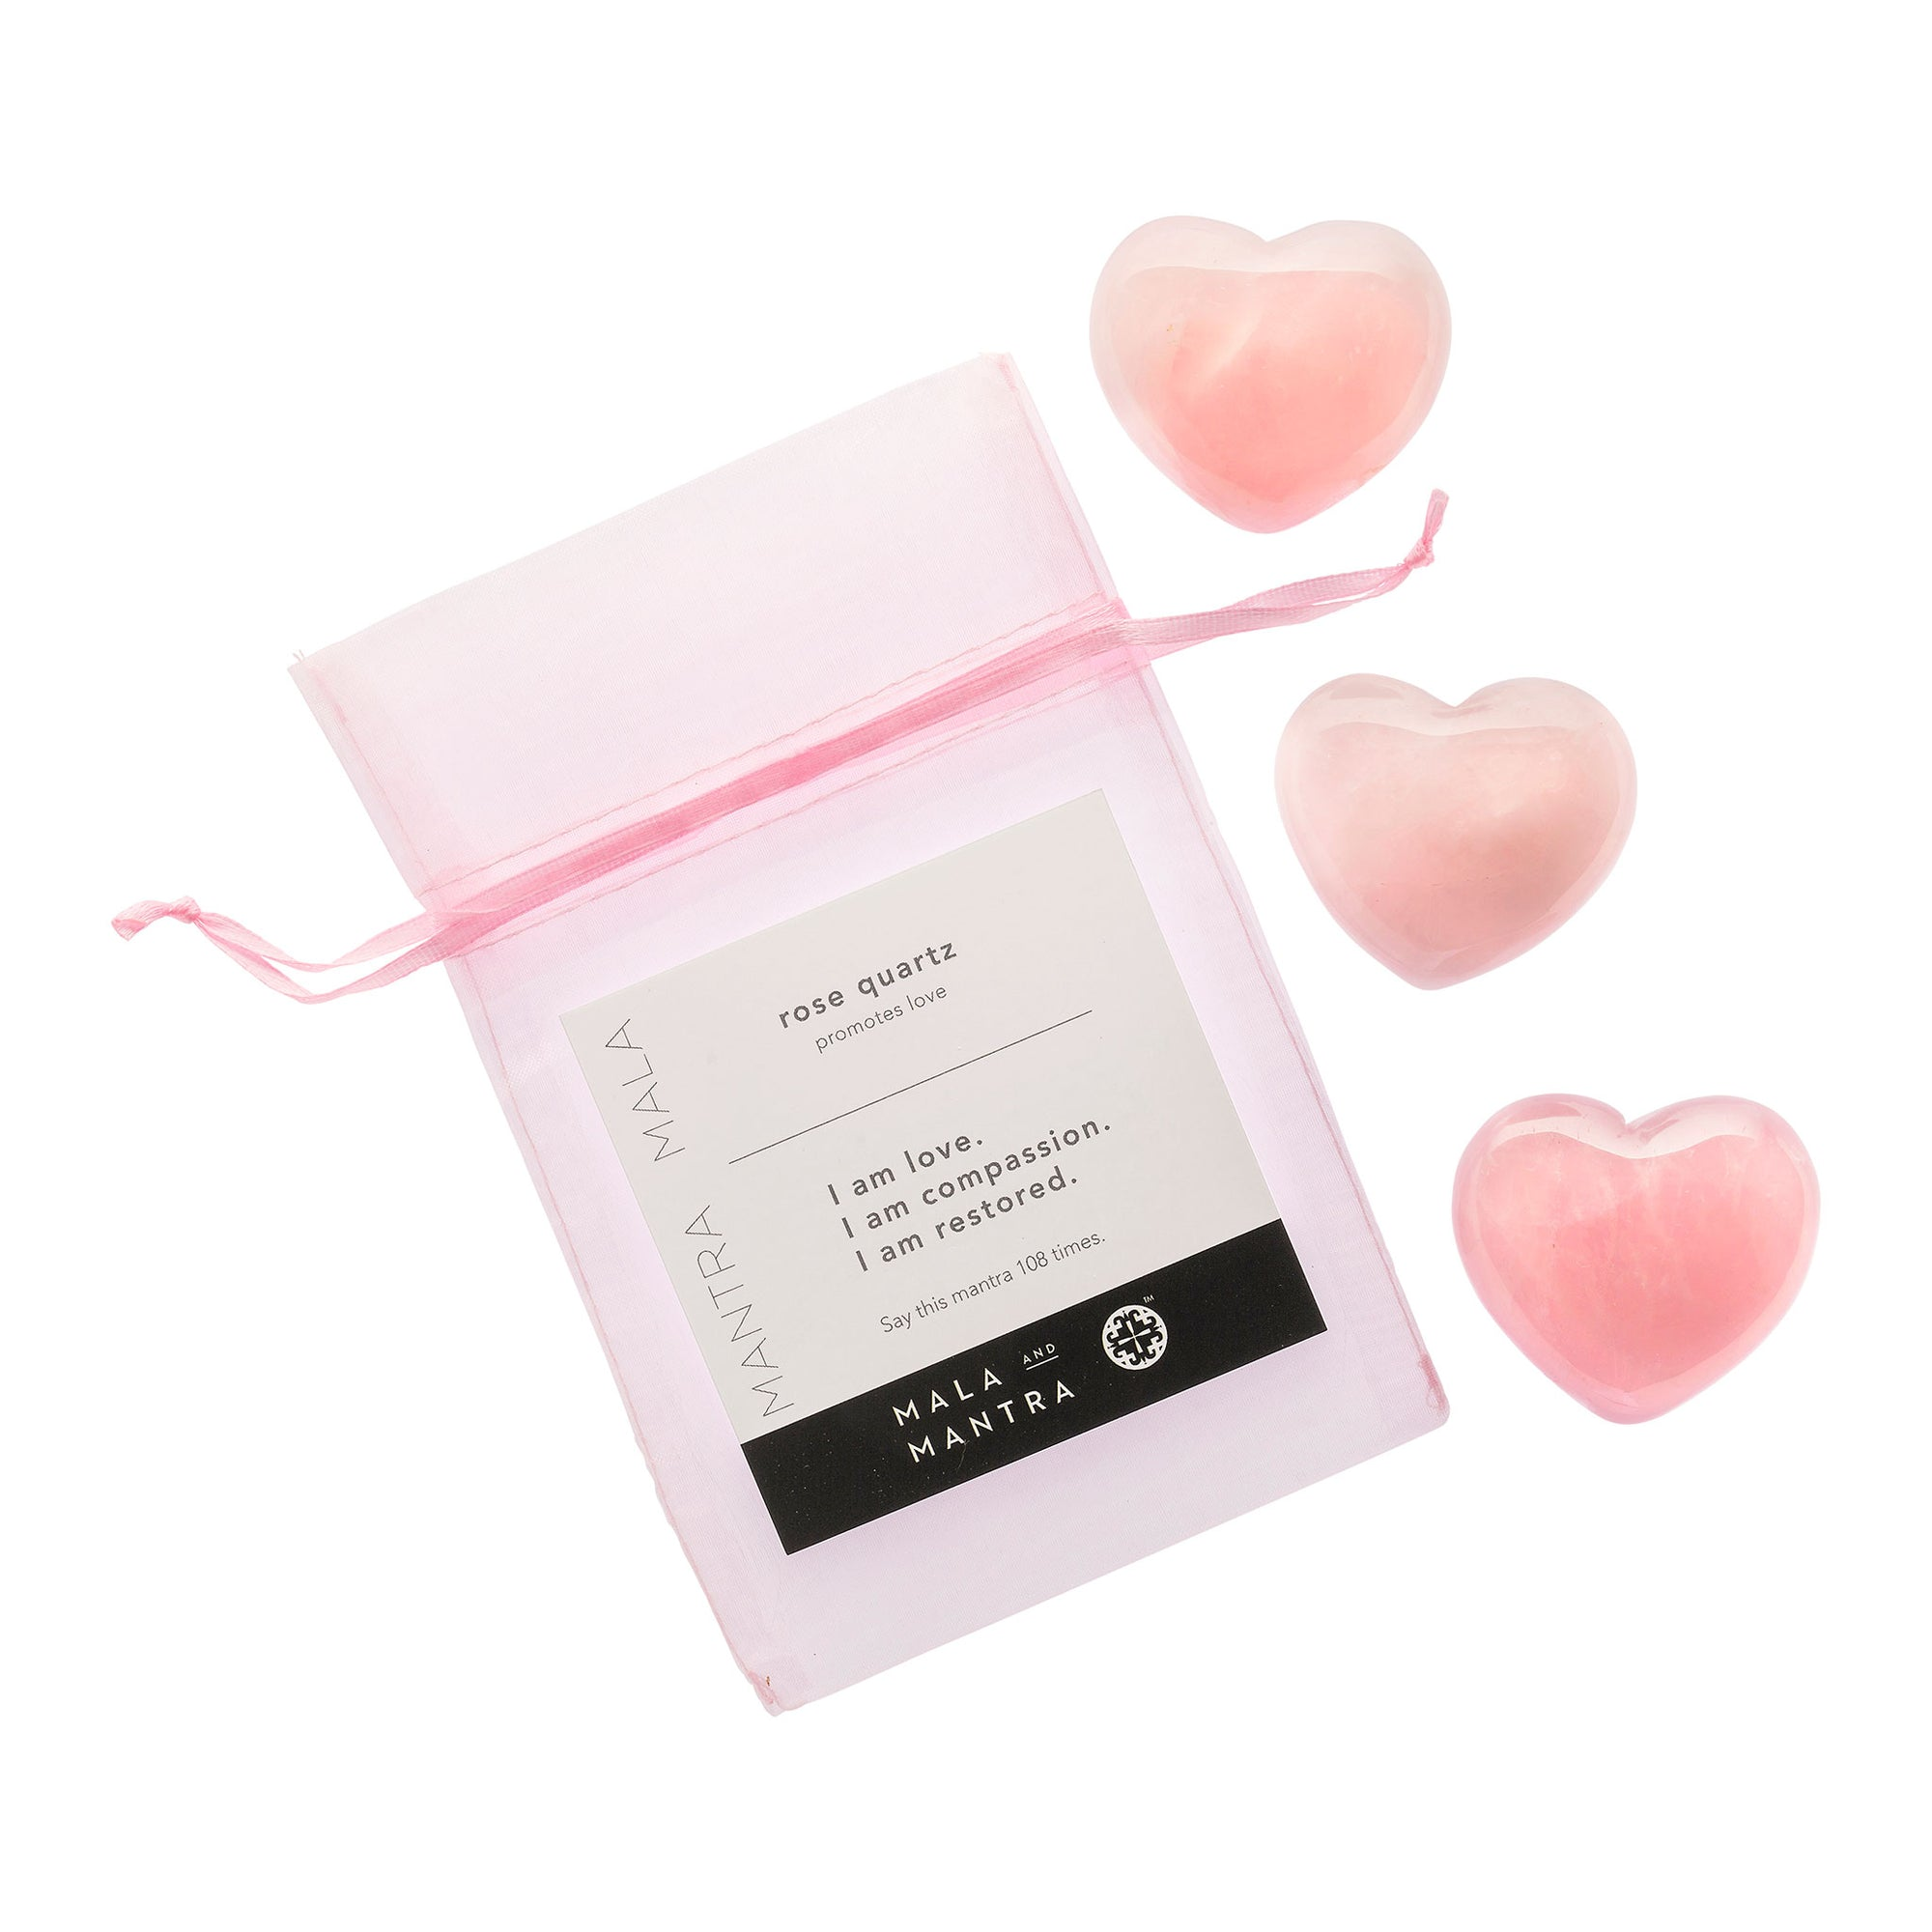 BE LOVE: Triple Happiness Trio of Rose Quartz Heart Stones Gift Set